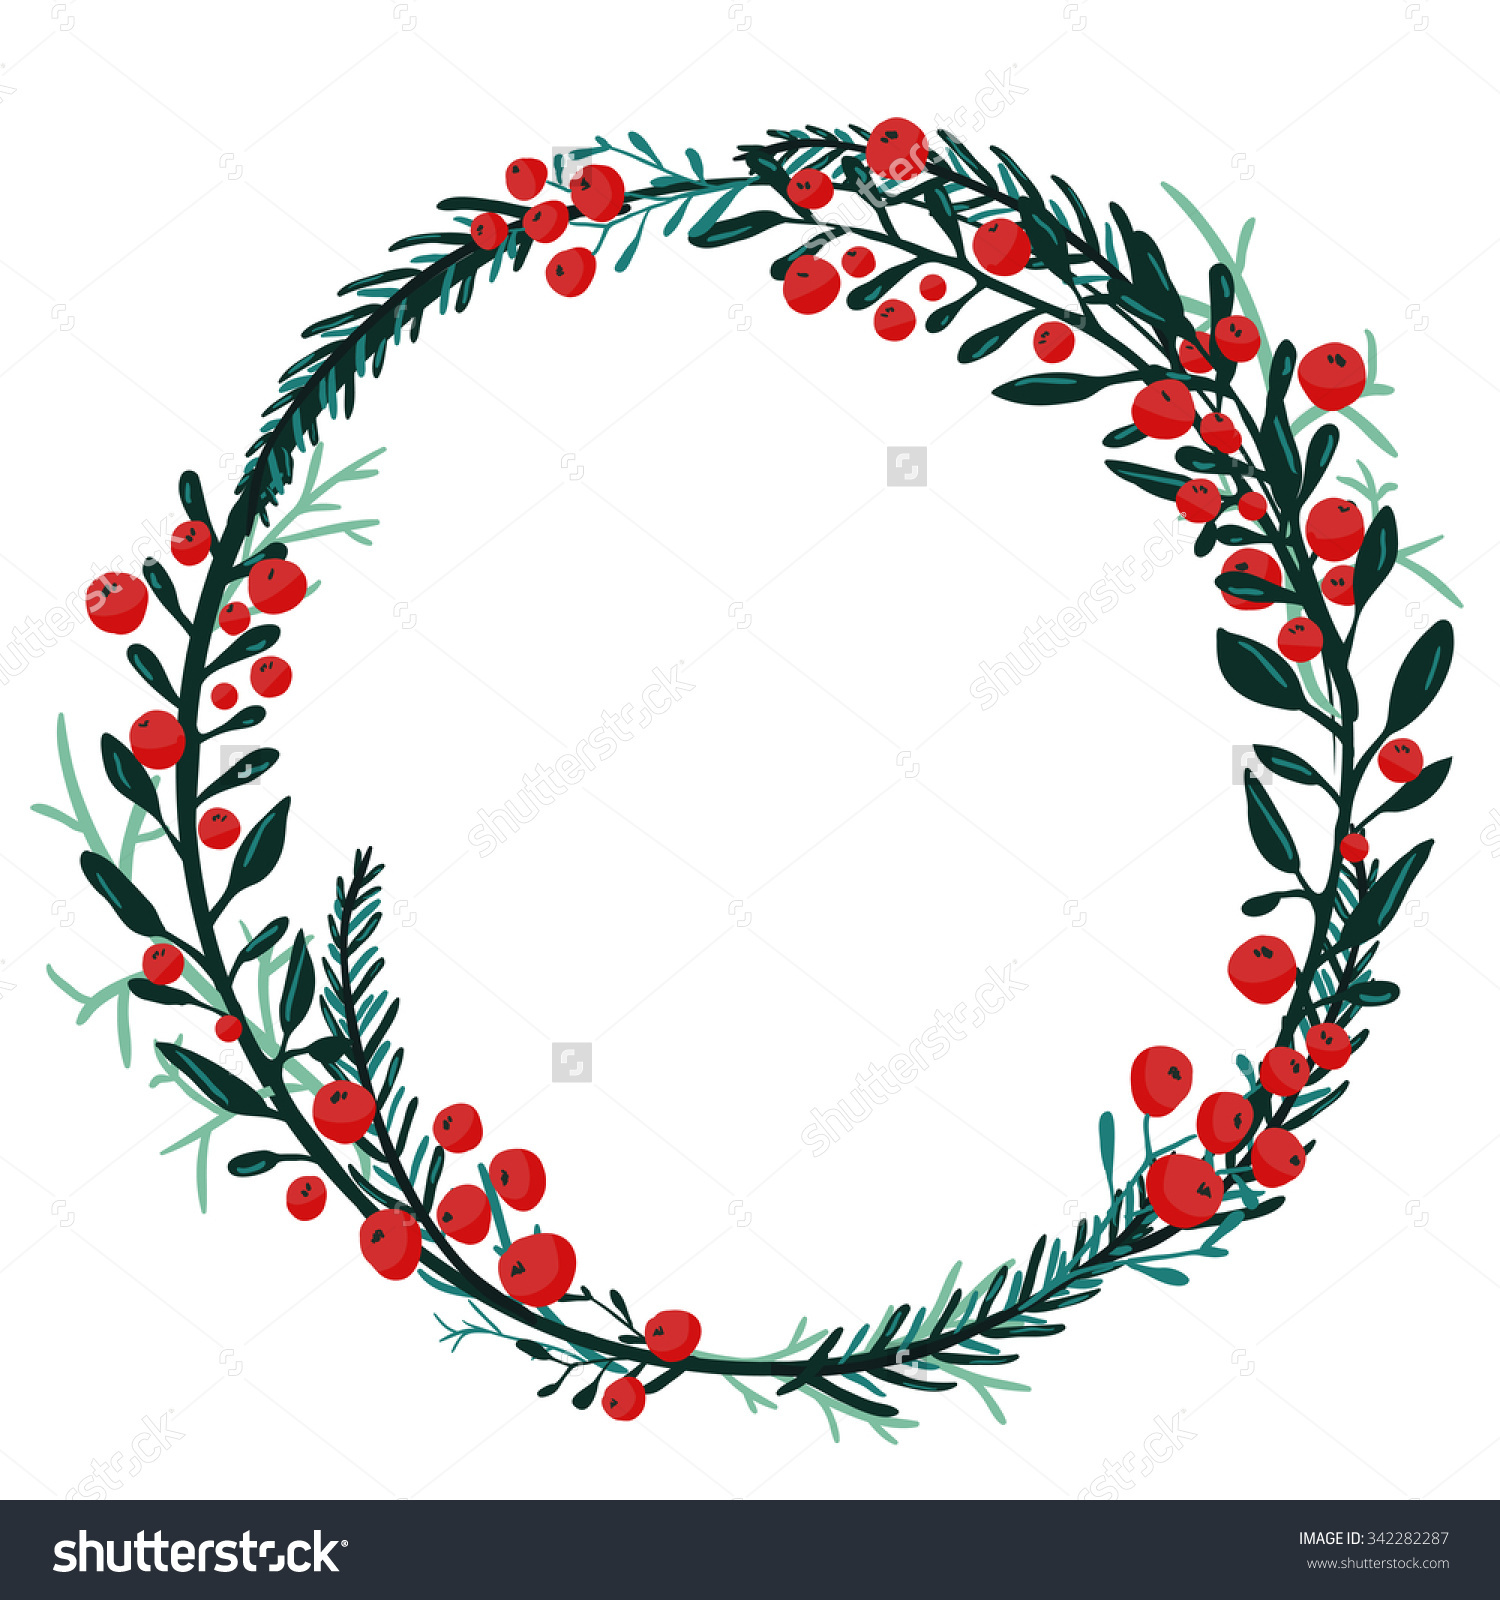 Wreath Drawing At Getdrawings